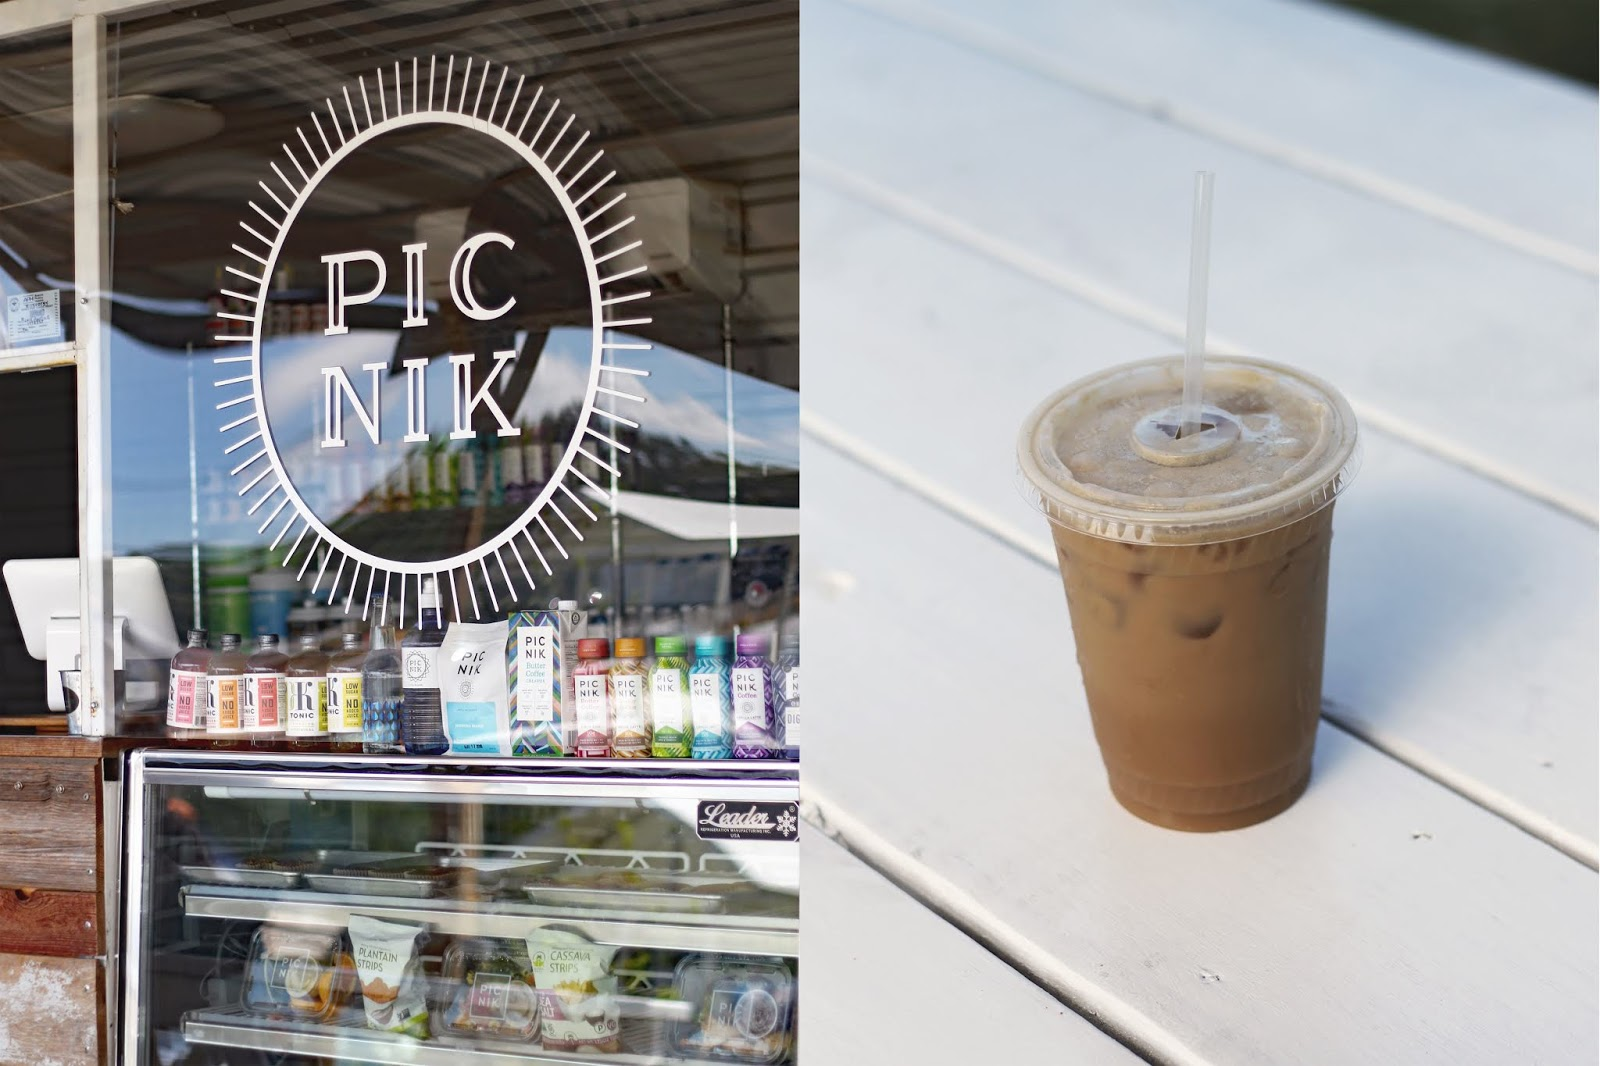 Picnik Austin, Iced Coffee, Cozy Coffee Shop, Coffee Shops Vibe